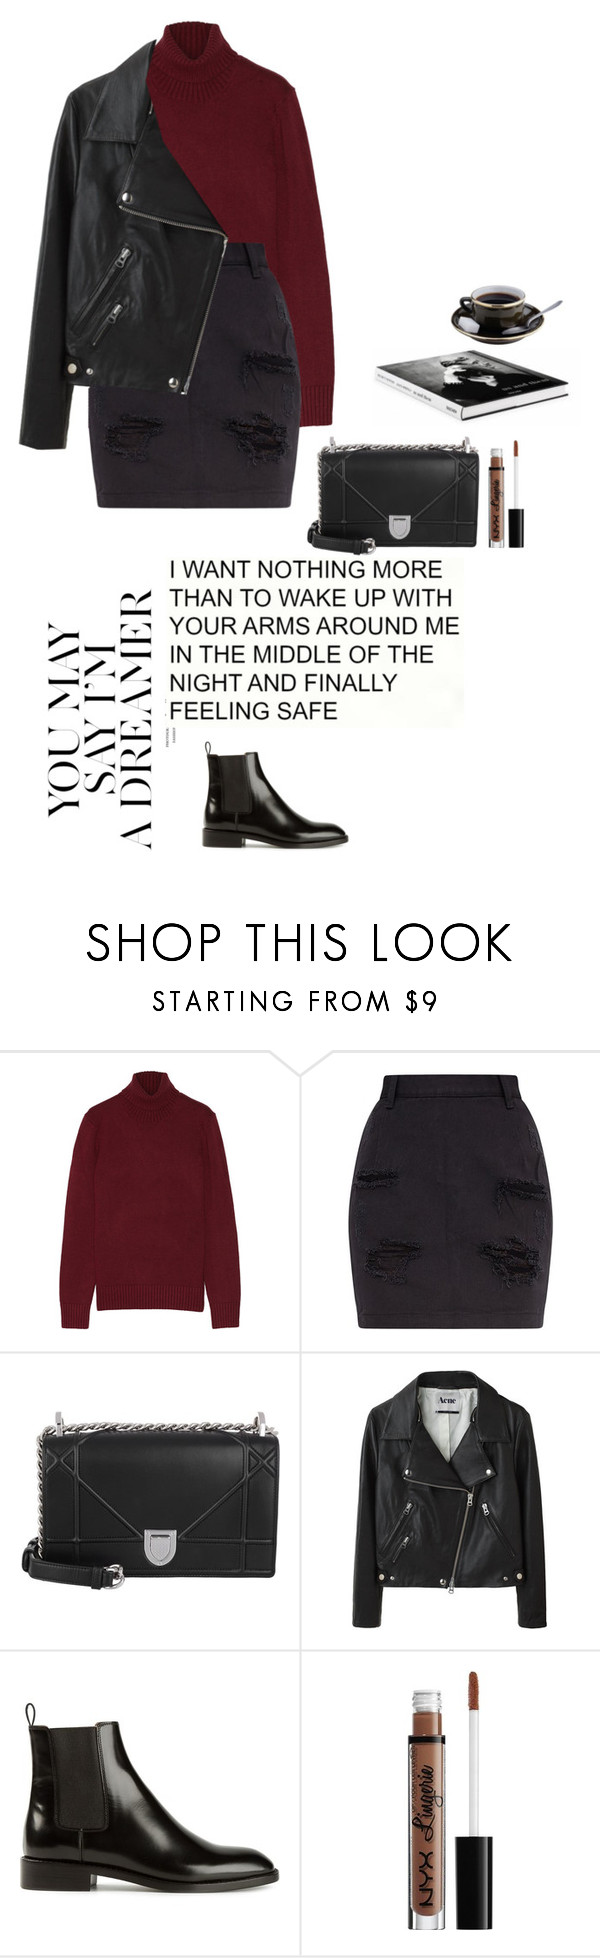 """""""morning in the café"""" by djulia-tarasova ❤ liked on Polyvore featuring Michael Kors, Christian Dior, Acne Studios, Nobis, Yves Saint Laurent and NYX"""